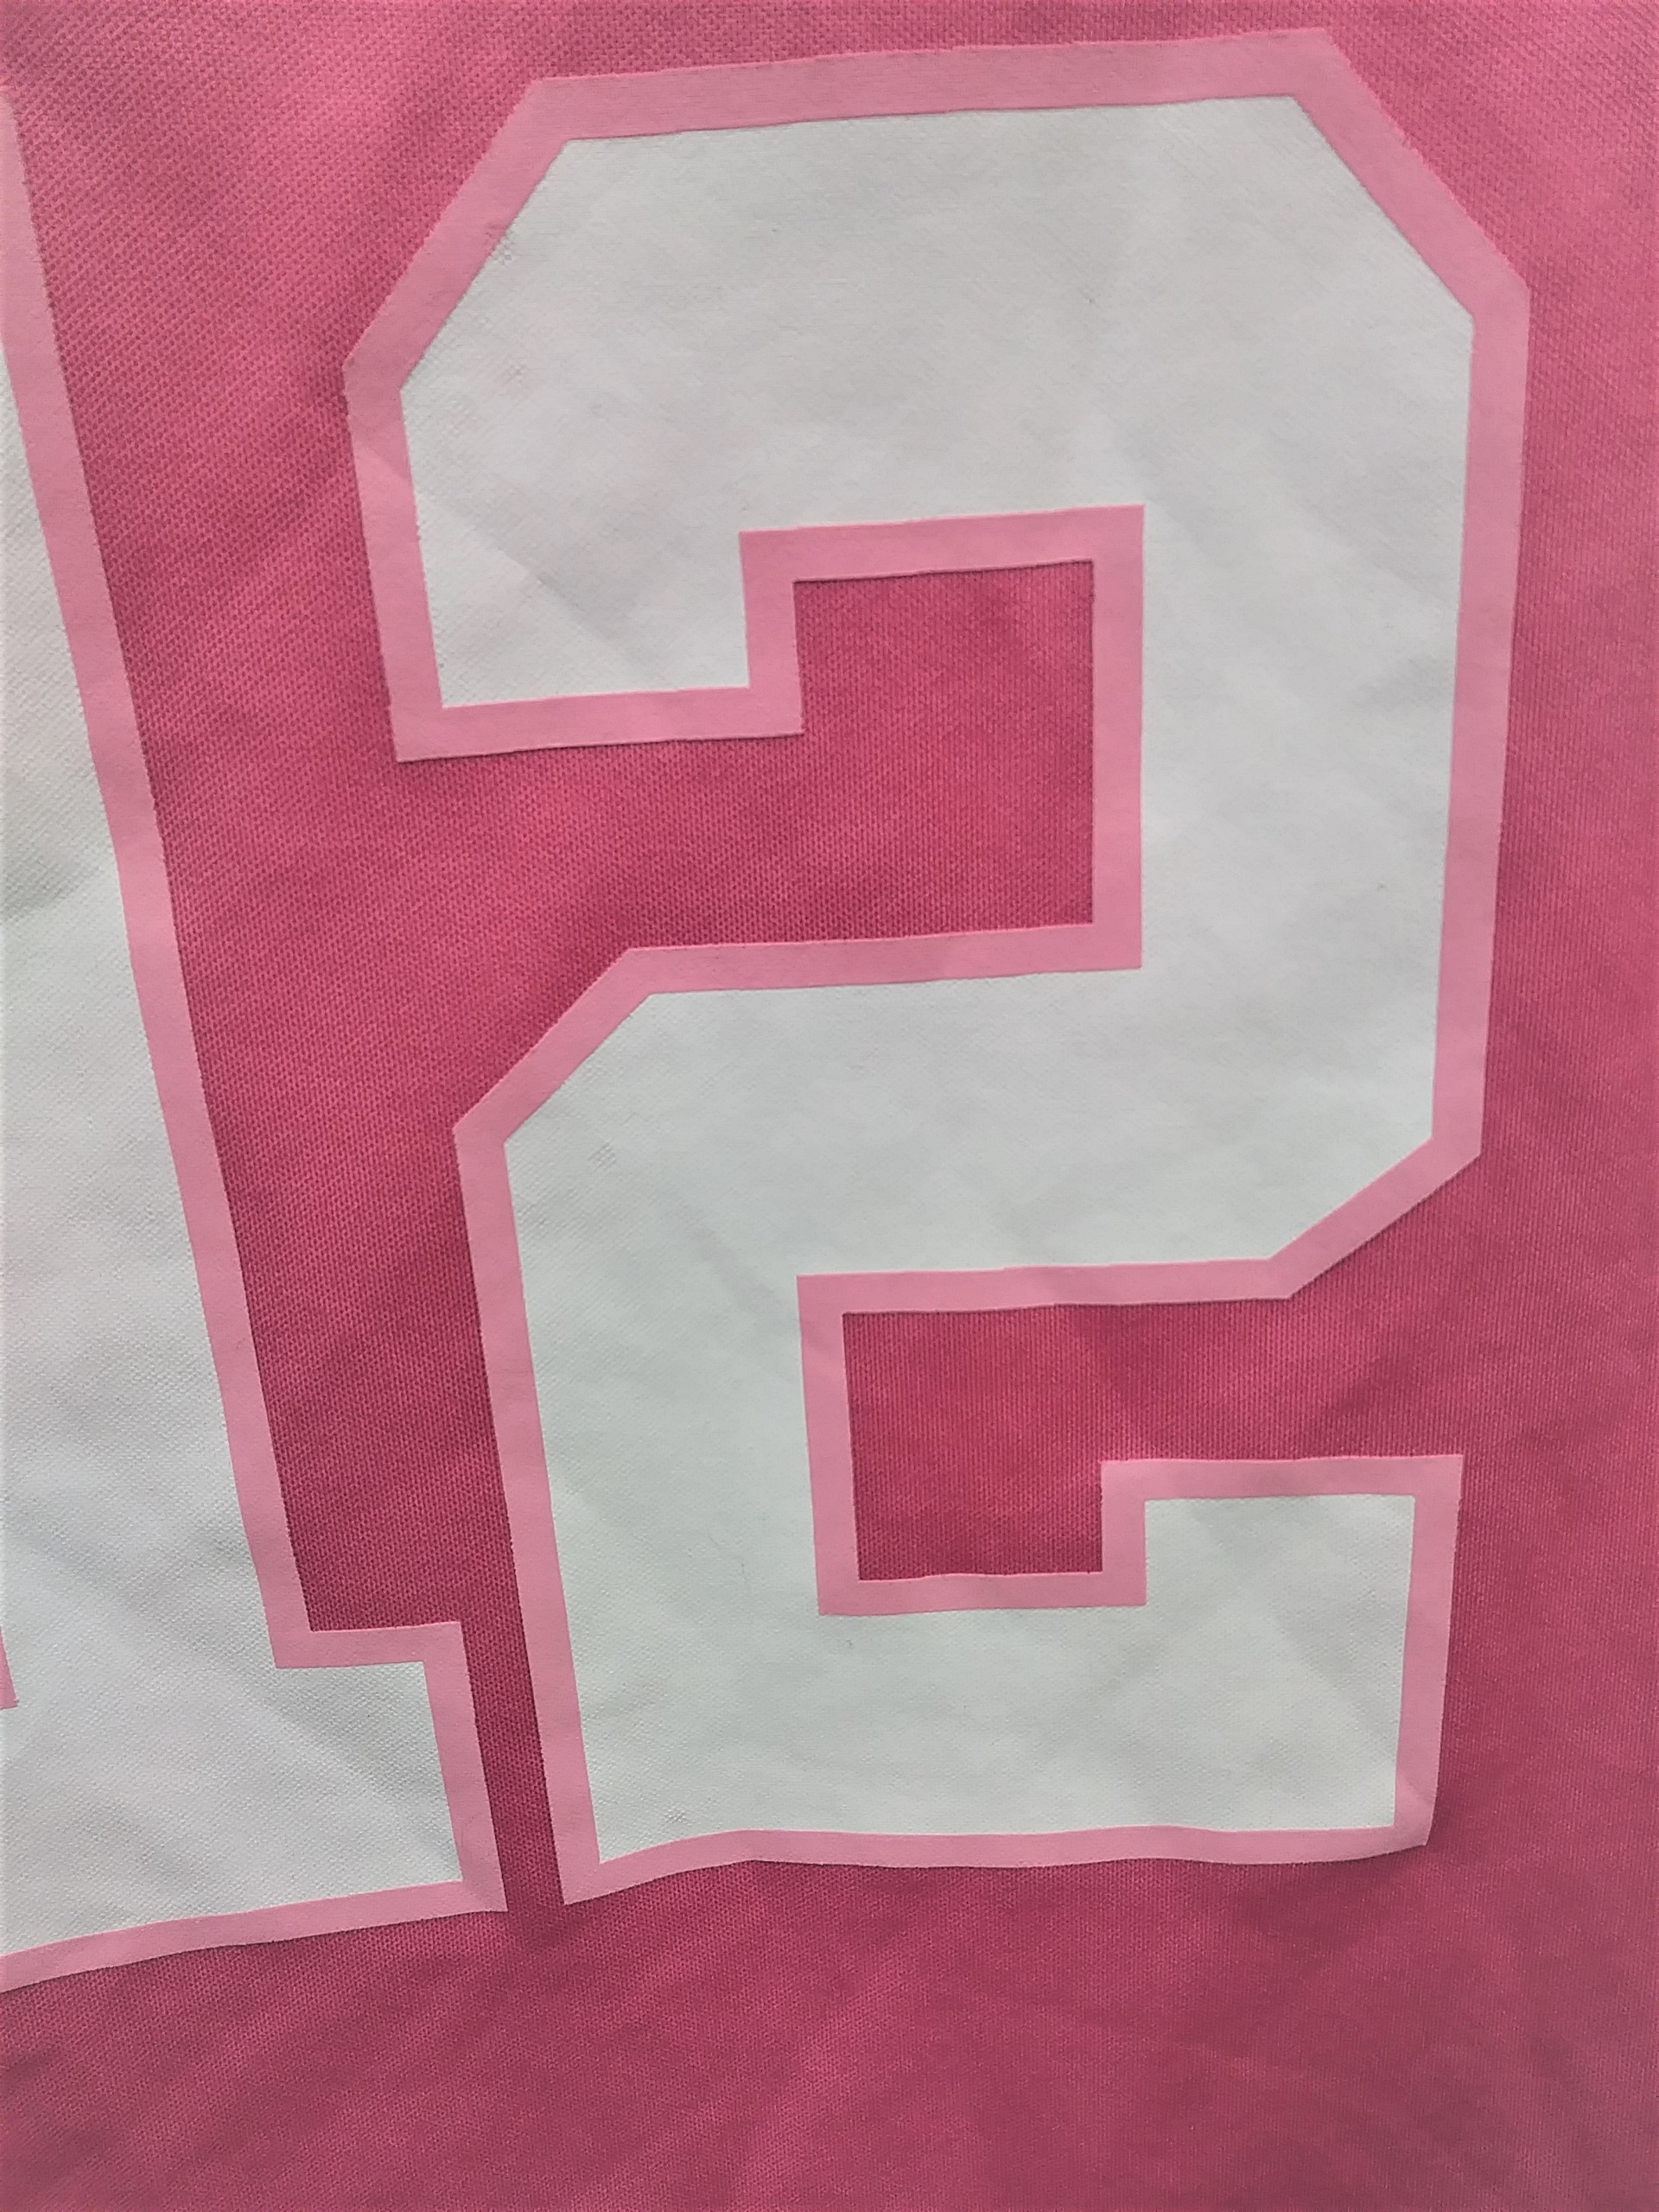 best service 6b49e c9d56 Green Bay Packers Aaron Rodgers #12 Pink Jersey Style T-Shirt Size M 10-12